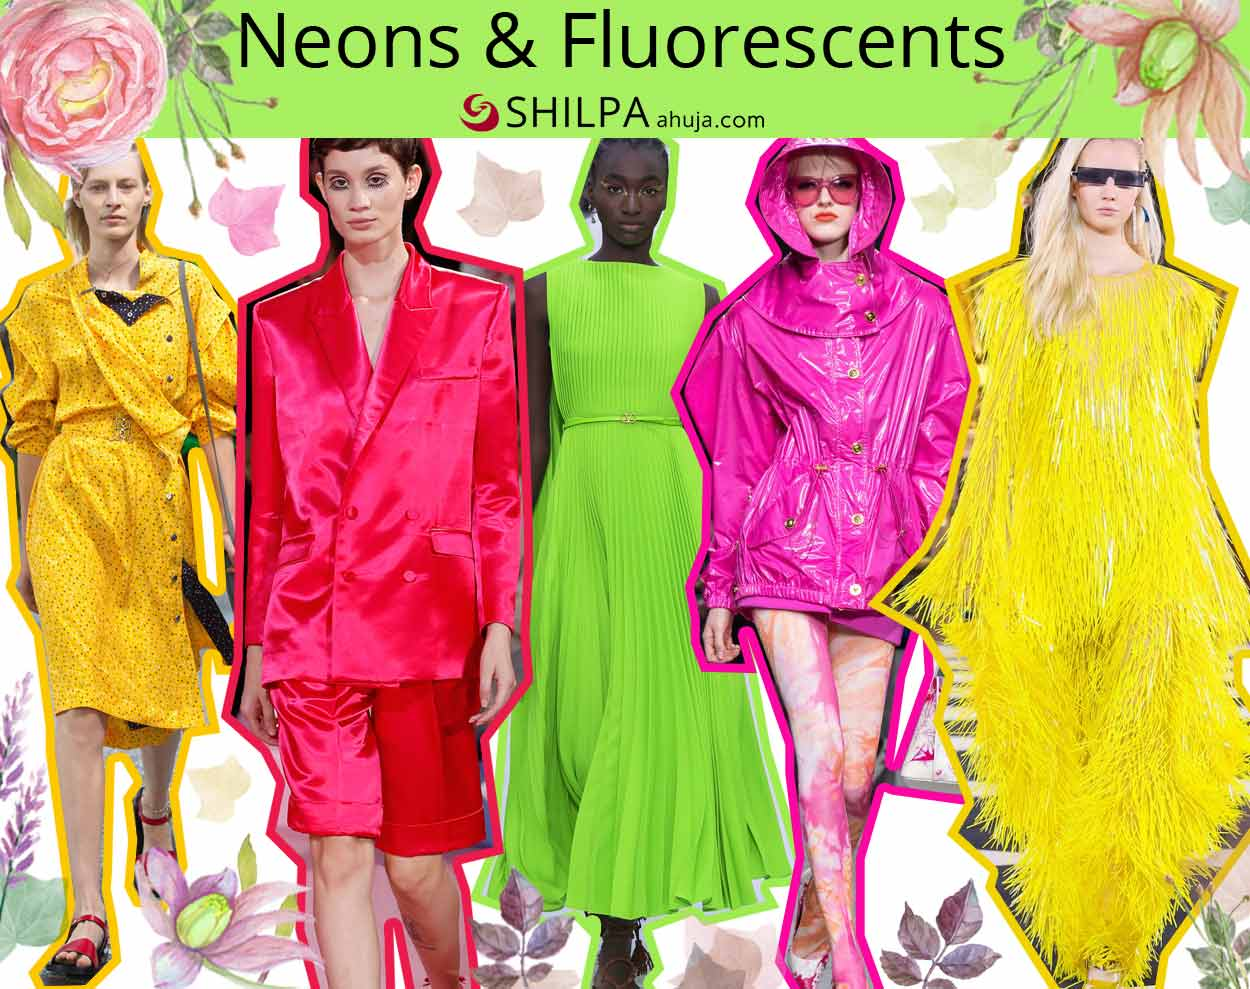 latest fashion trends styles spring 2020 ss20 colors Neons-Fluorescents